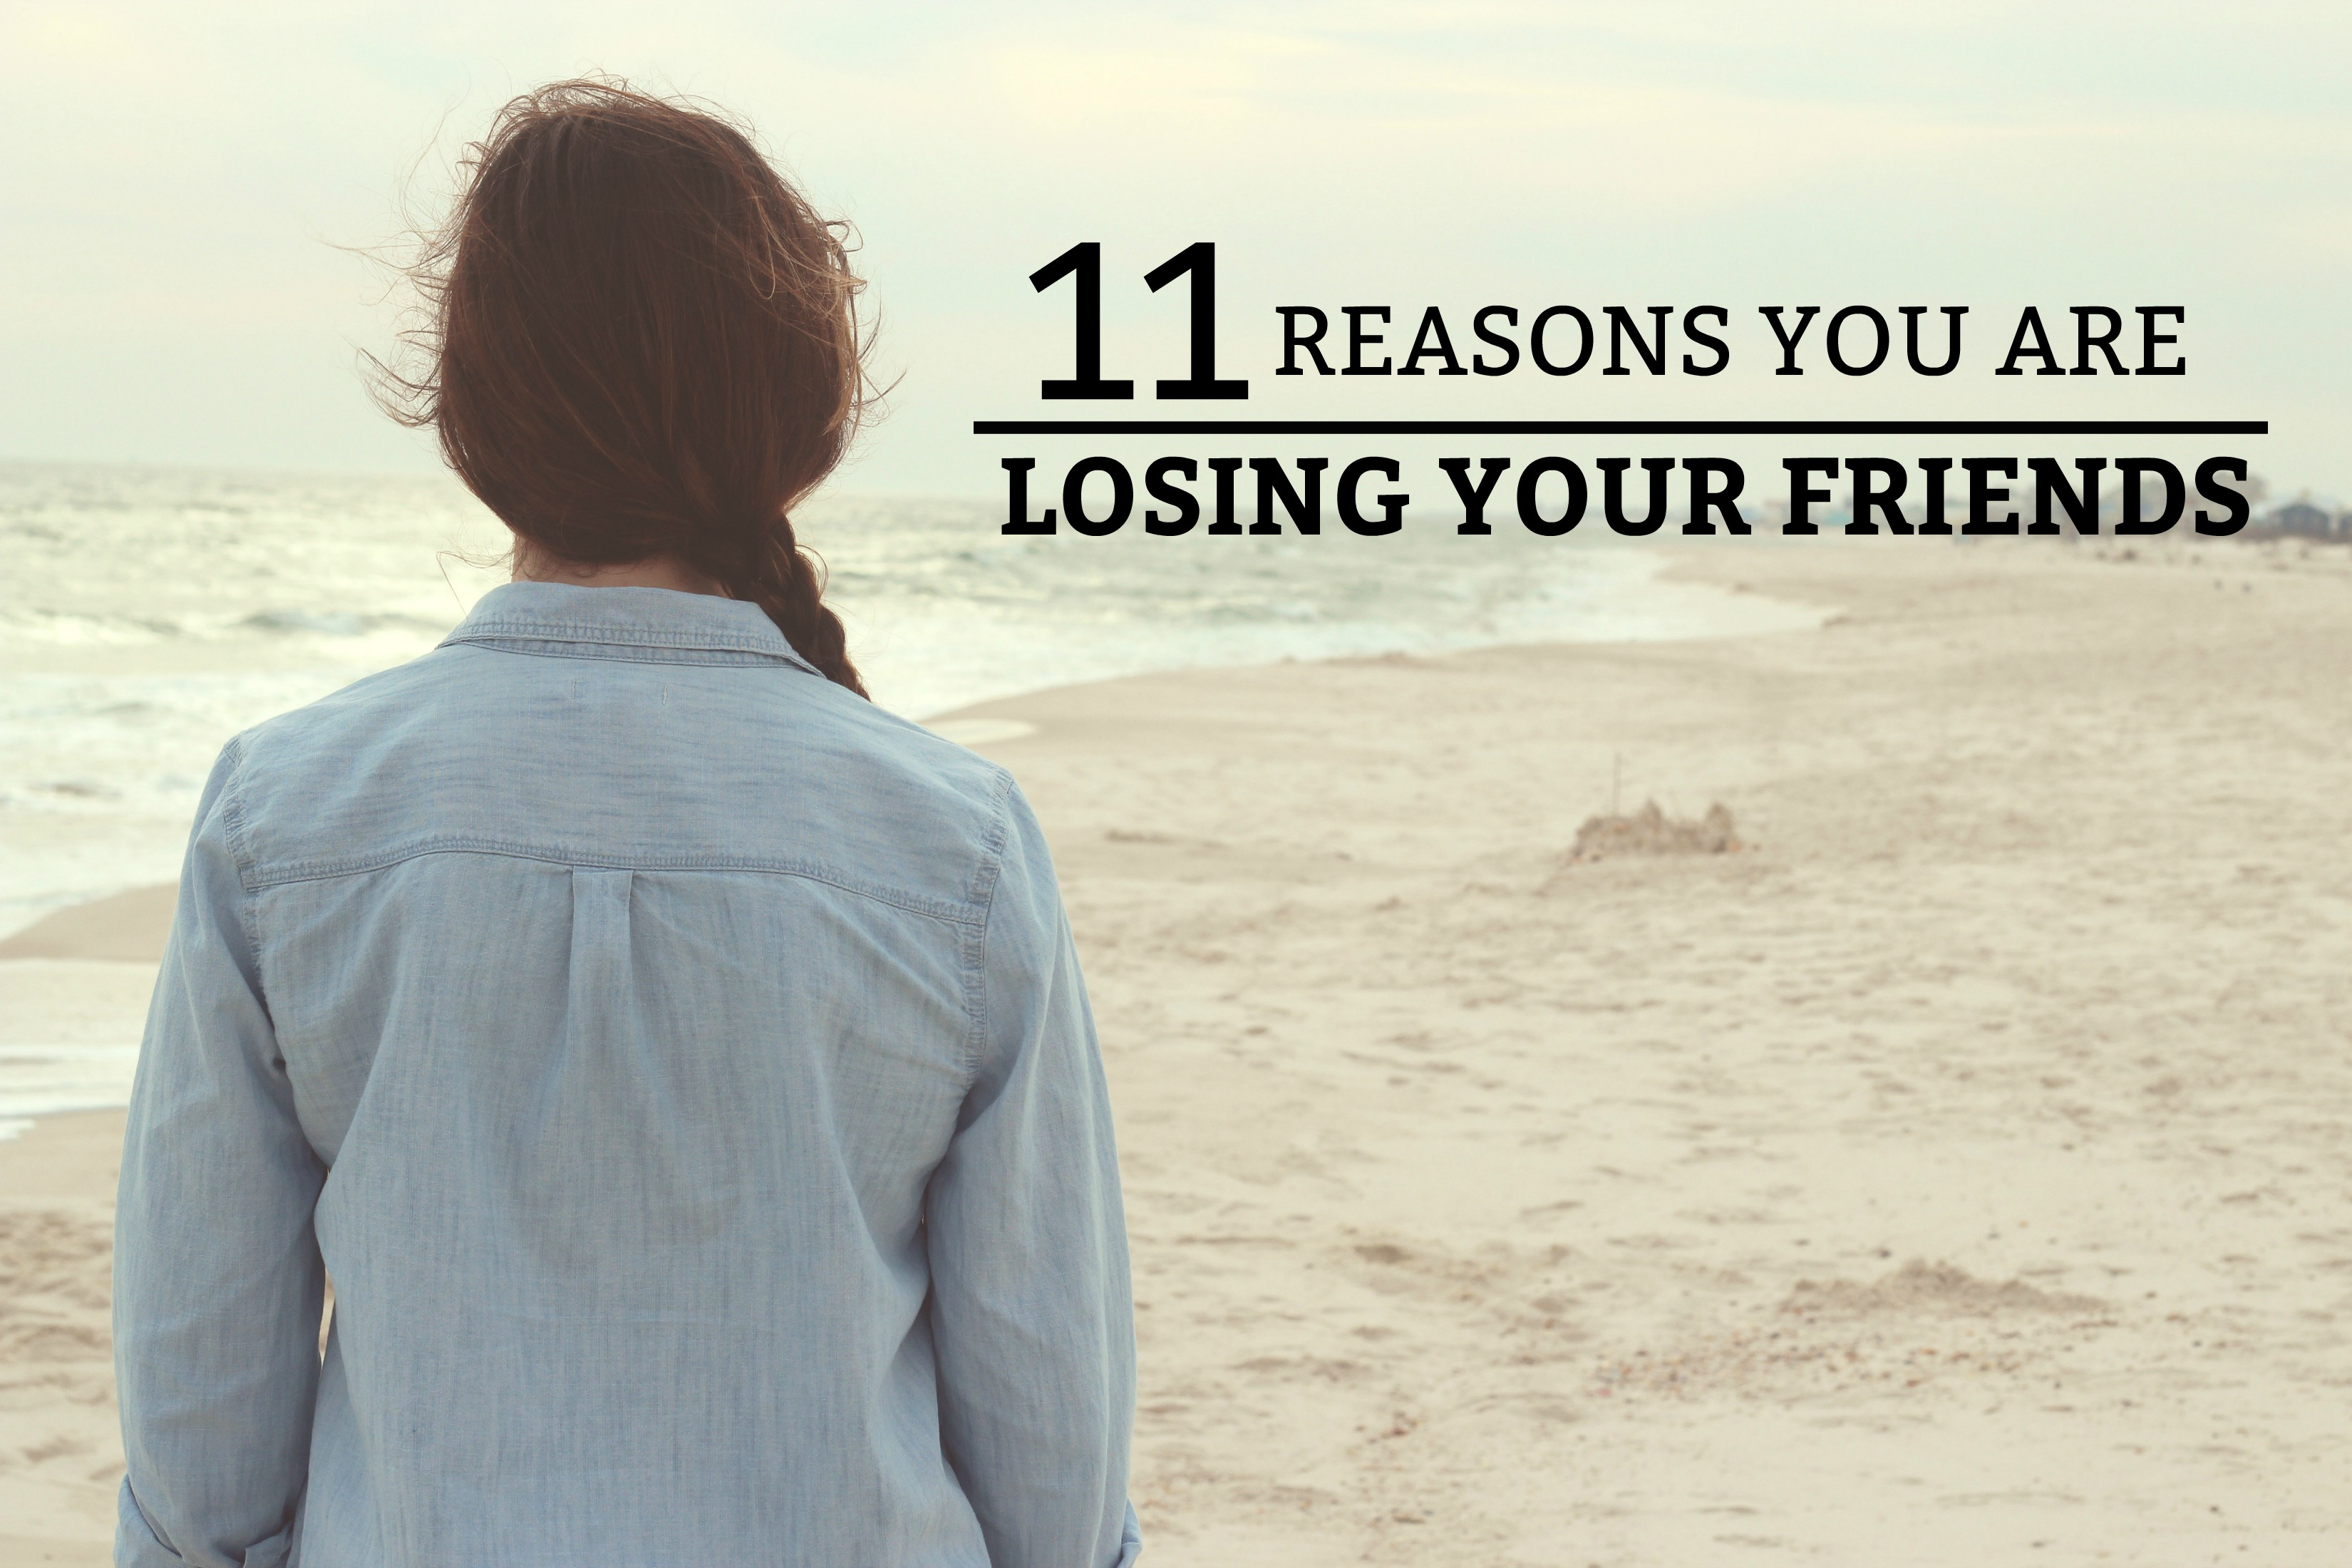 11 Reasons You Are Losing Your Friends - a guide to the reasons you are losing your friends and how to maintain your relationships. www.tradingaverage.com